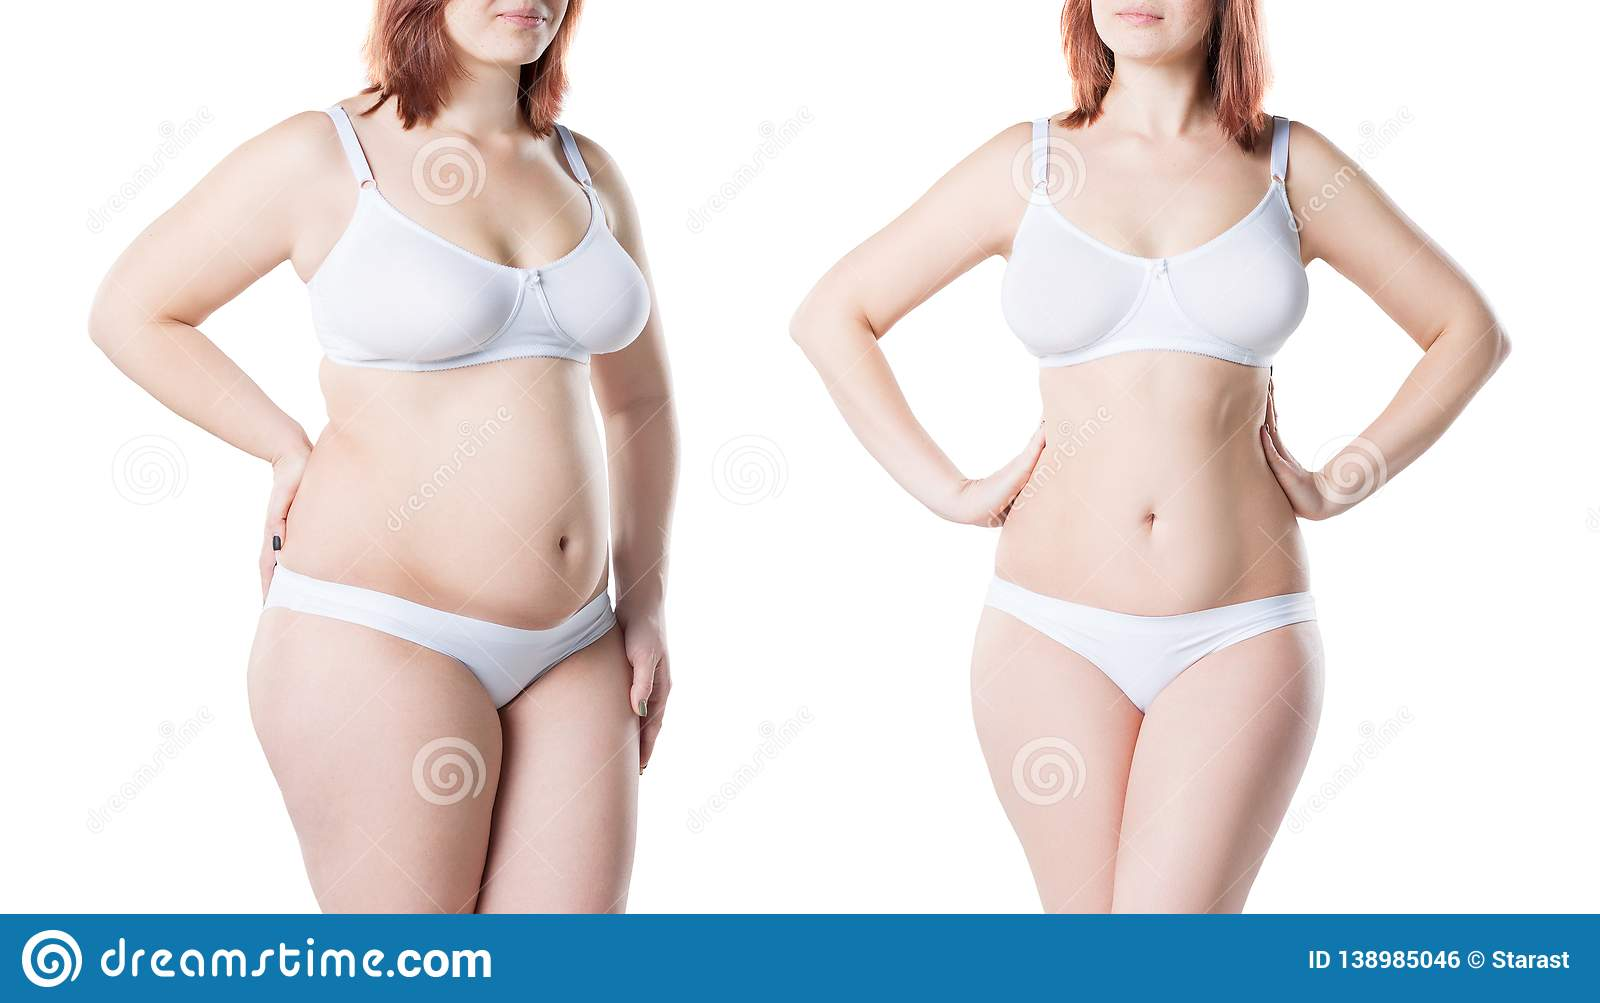 Before and after weight loss plastic surgery pictures